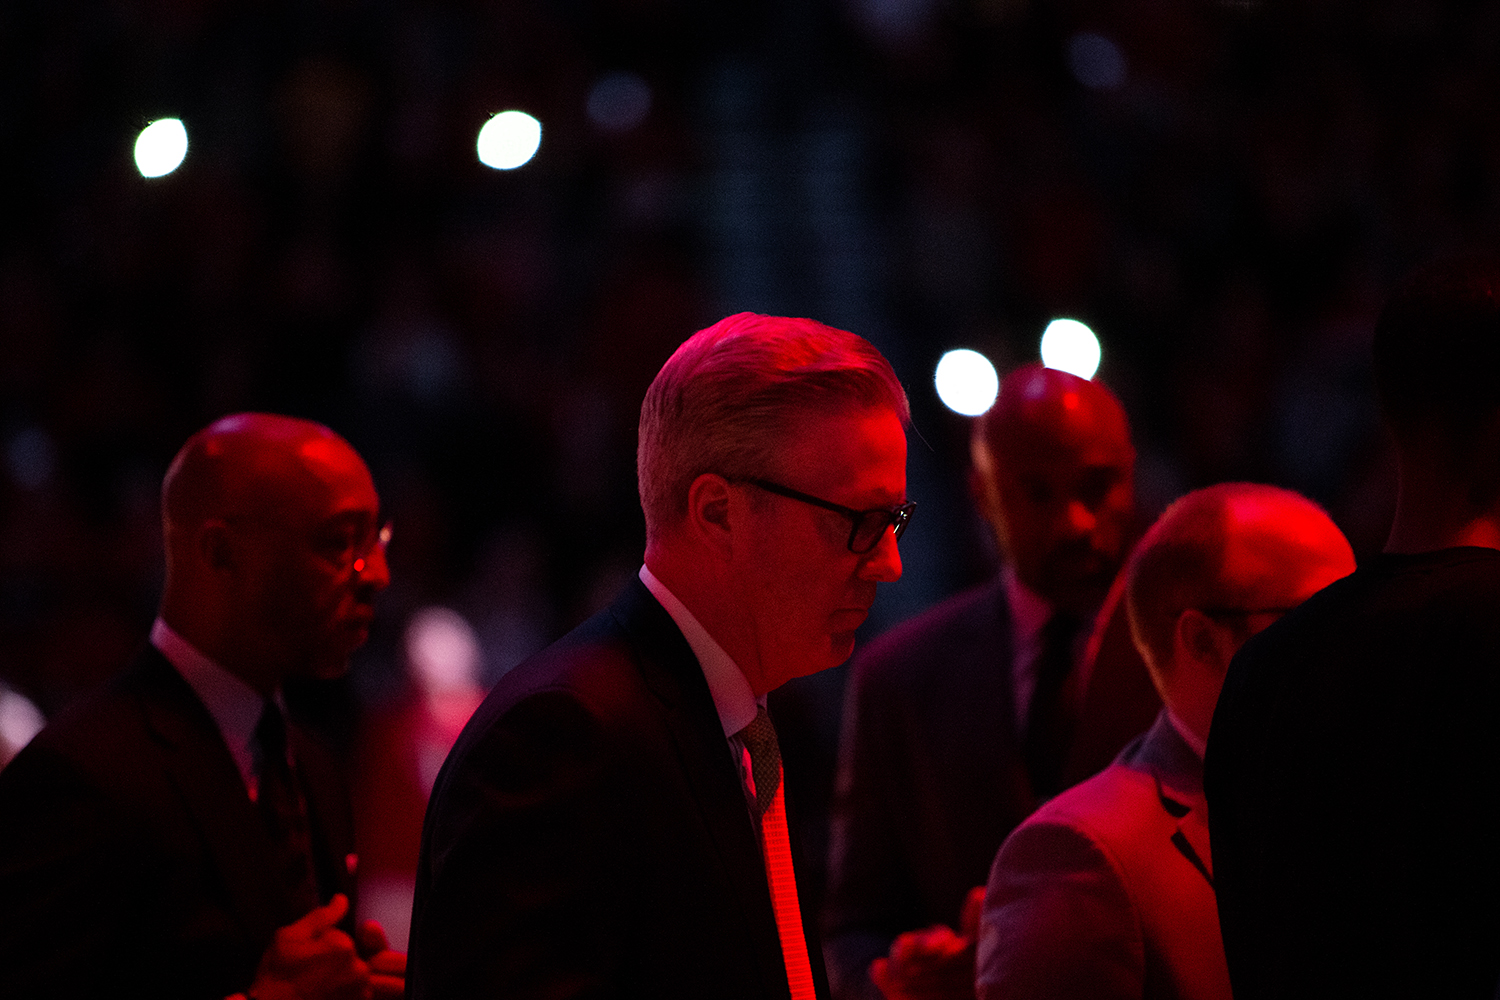 Iowa Head Coach Fran McCaffery during a mens basketball game between the Iowa Hawkeyes and the Nebraska Huskers at Pinnacle Bank Arena on Sunday, March 10, 2019. The Hawkeyes fell in overtime to the Huskers, 93-91.